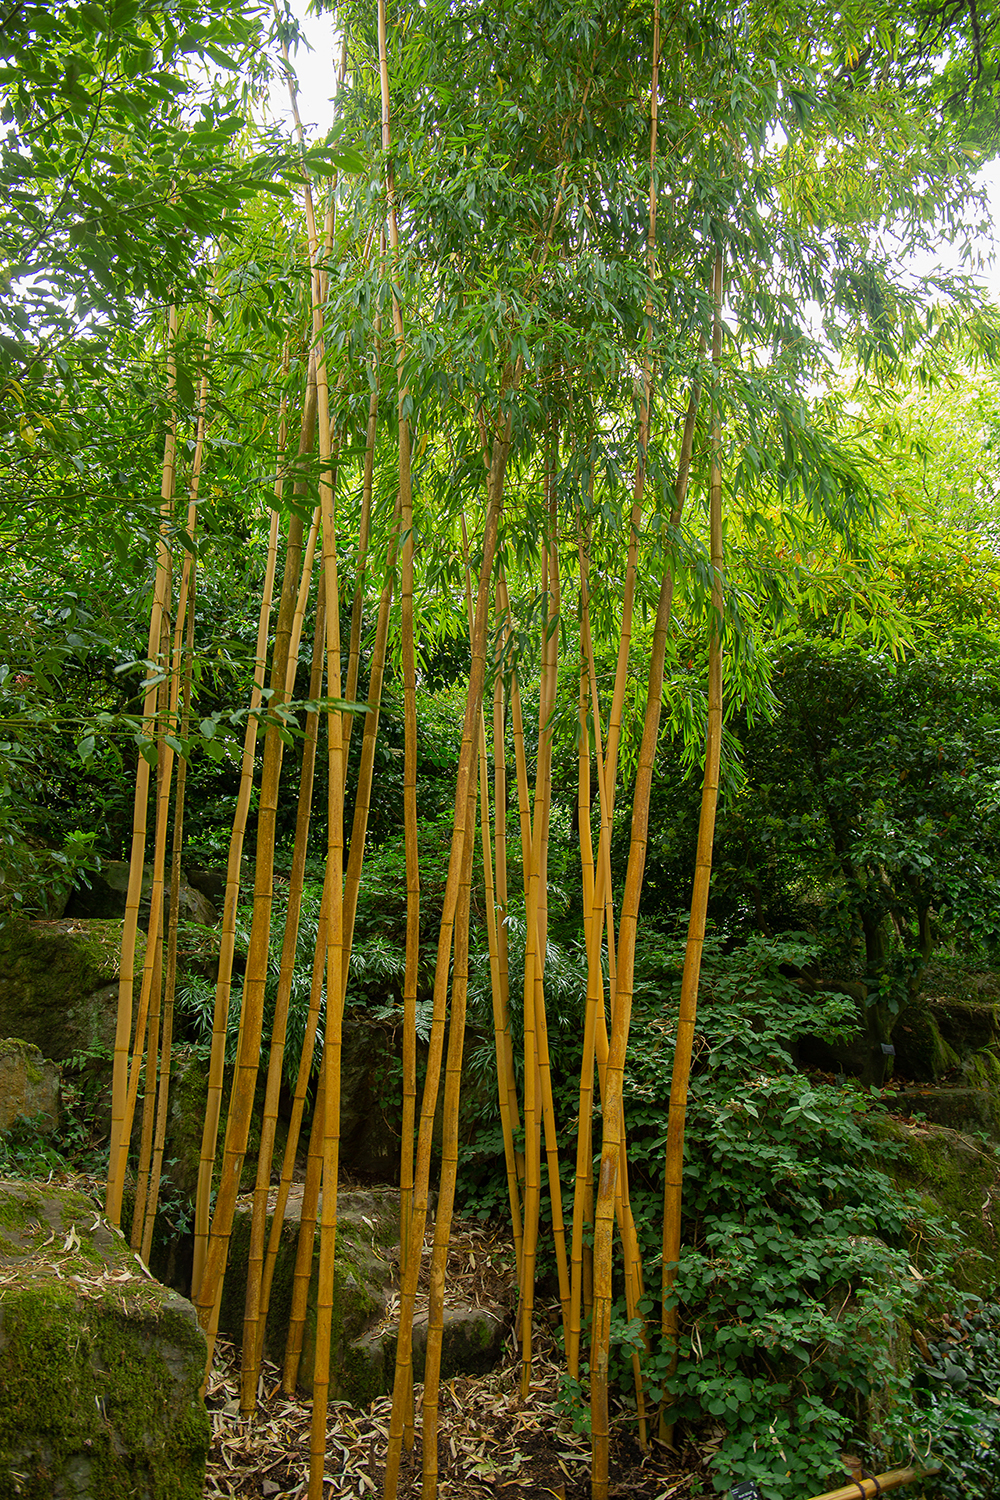 Golden Chinese timber bamboo (1 of 1)